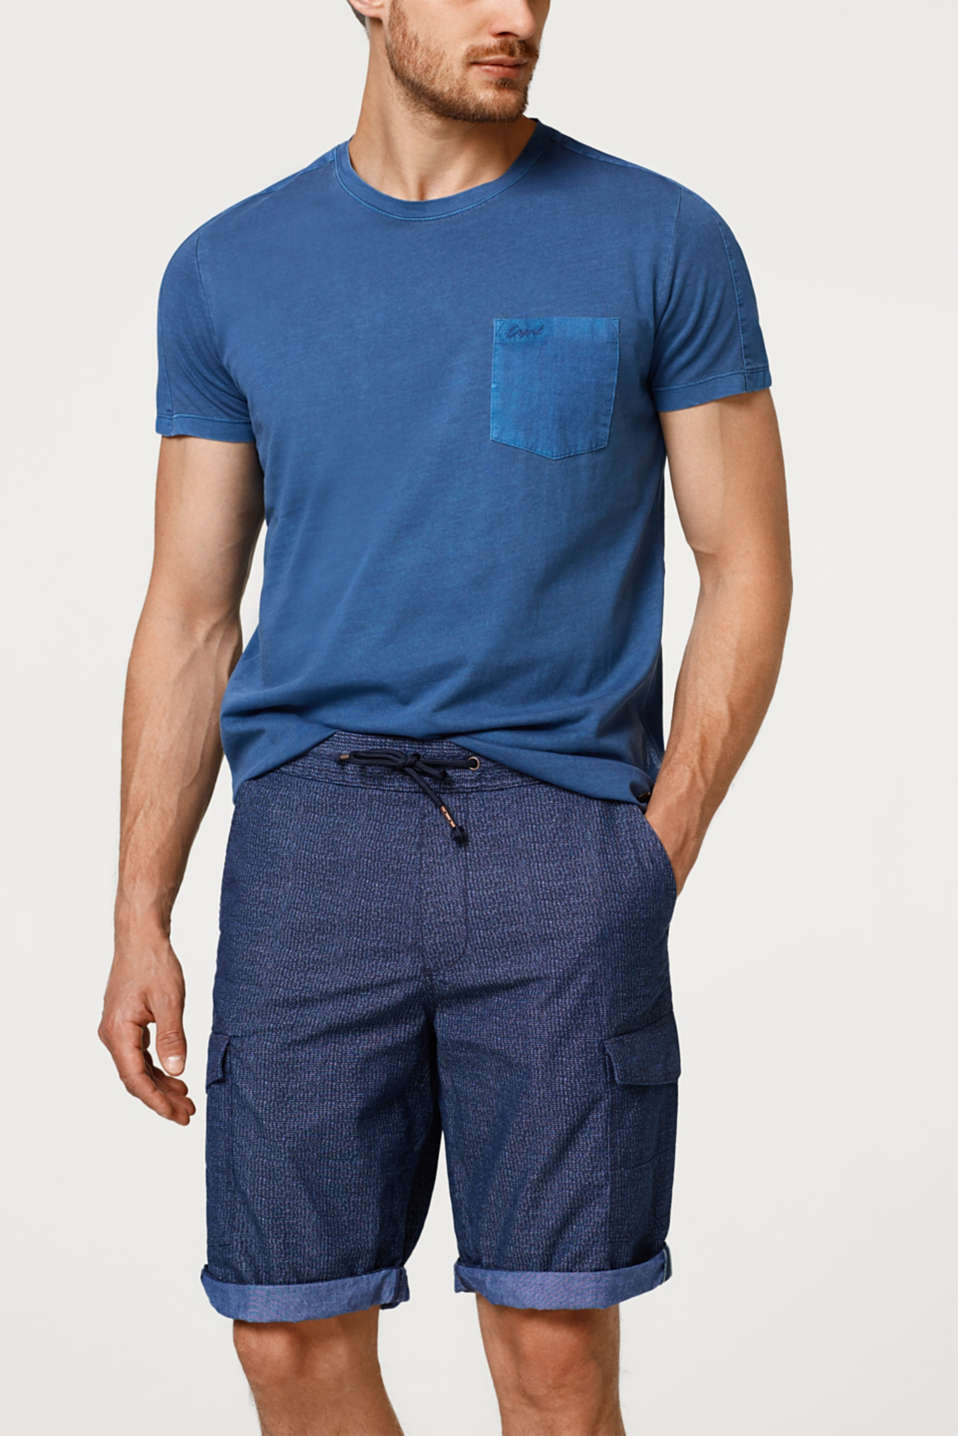 Jogging shorts with cargo pockets, made of cotton